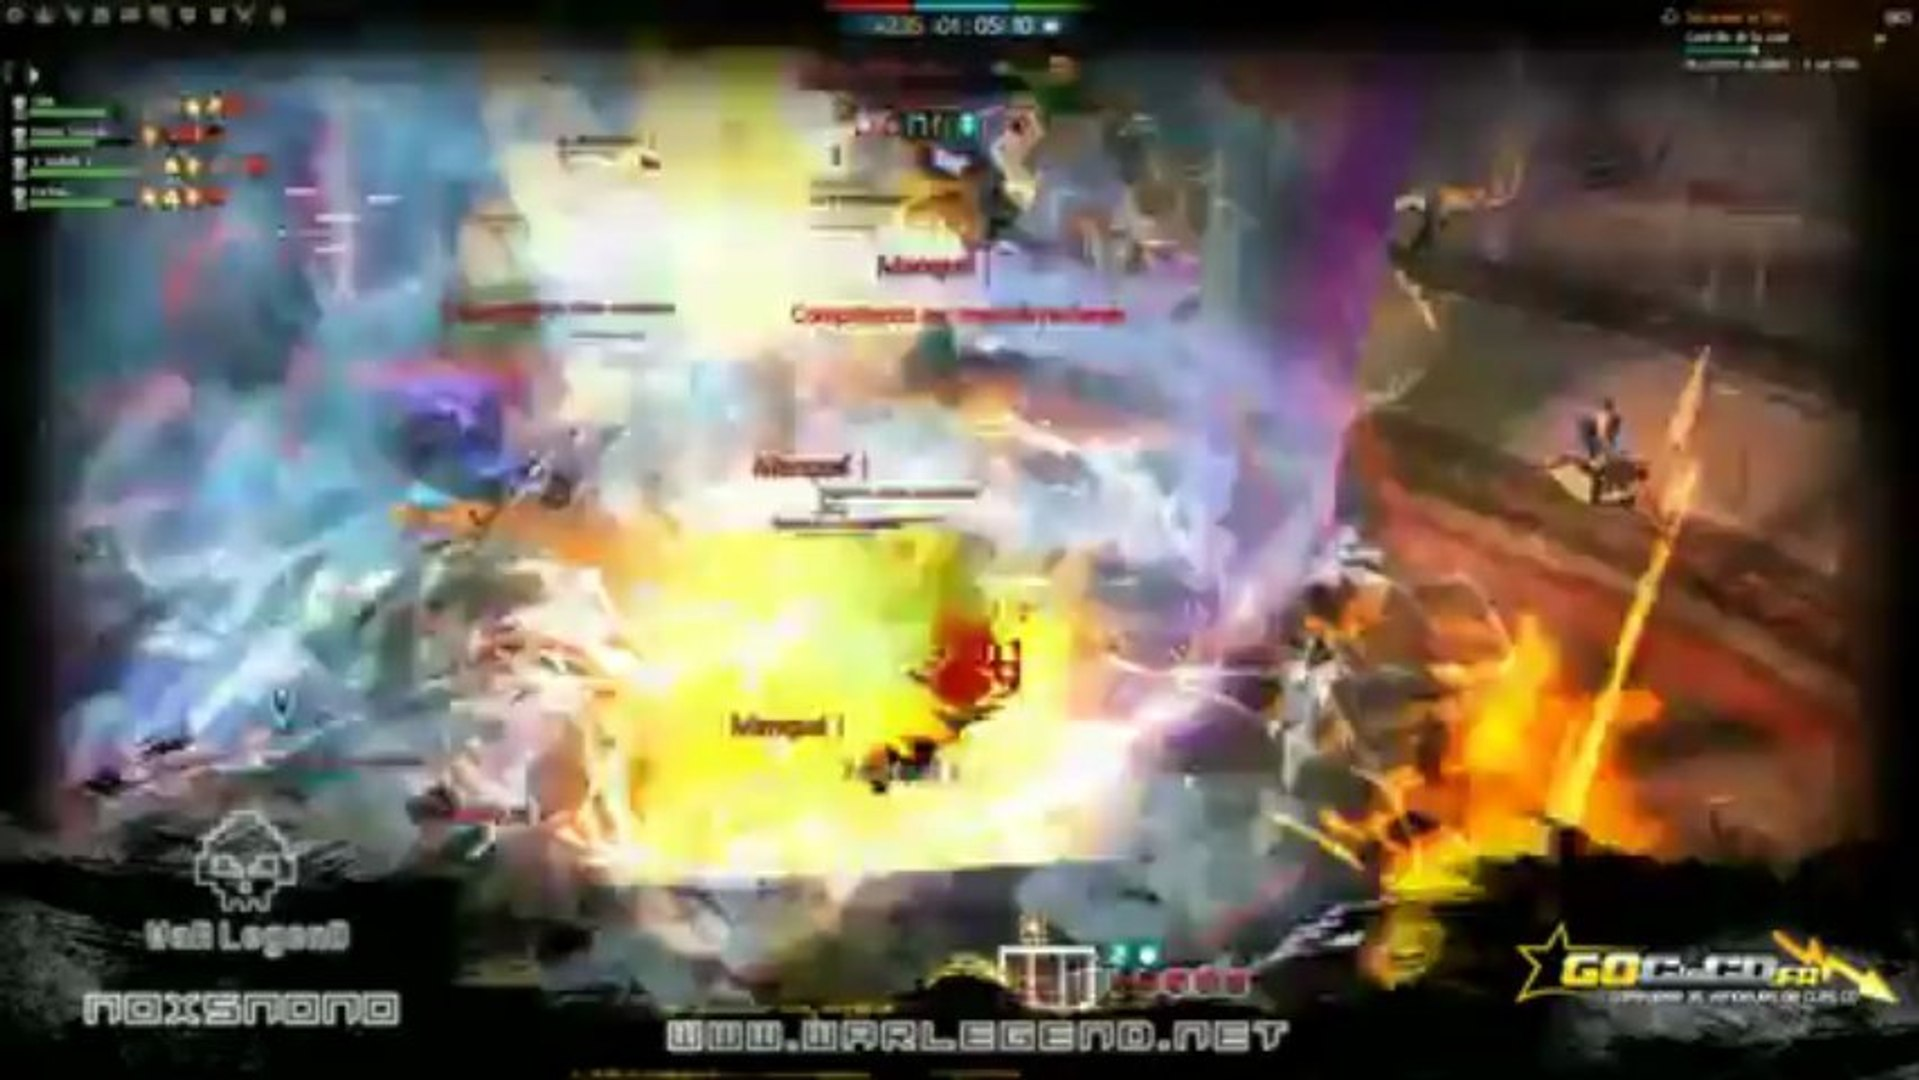 BattleStar WaR LegenD Guild Wars 2 - 21-03-2013